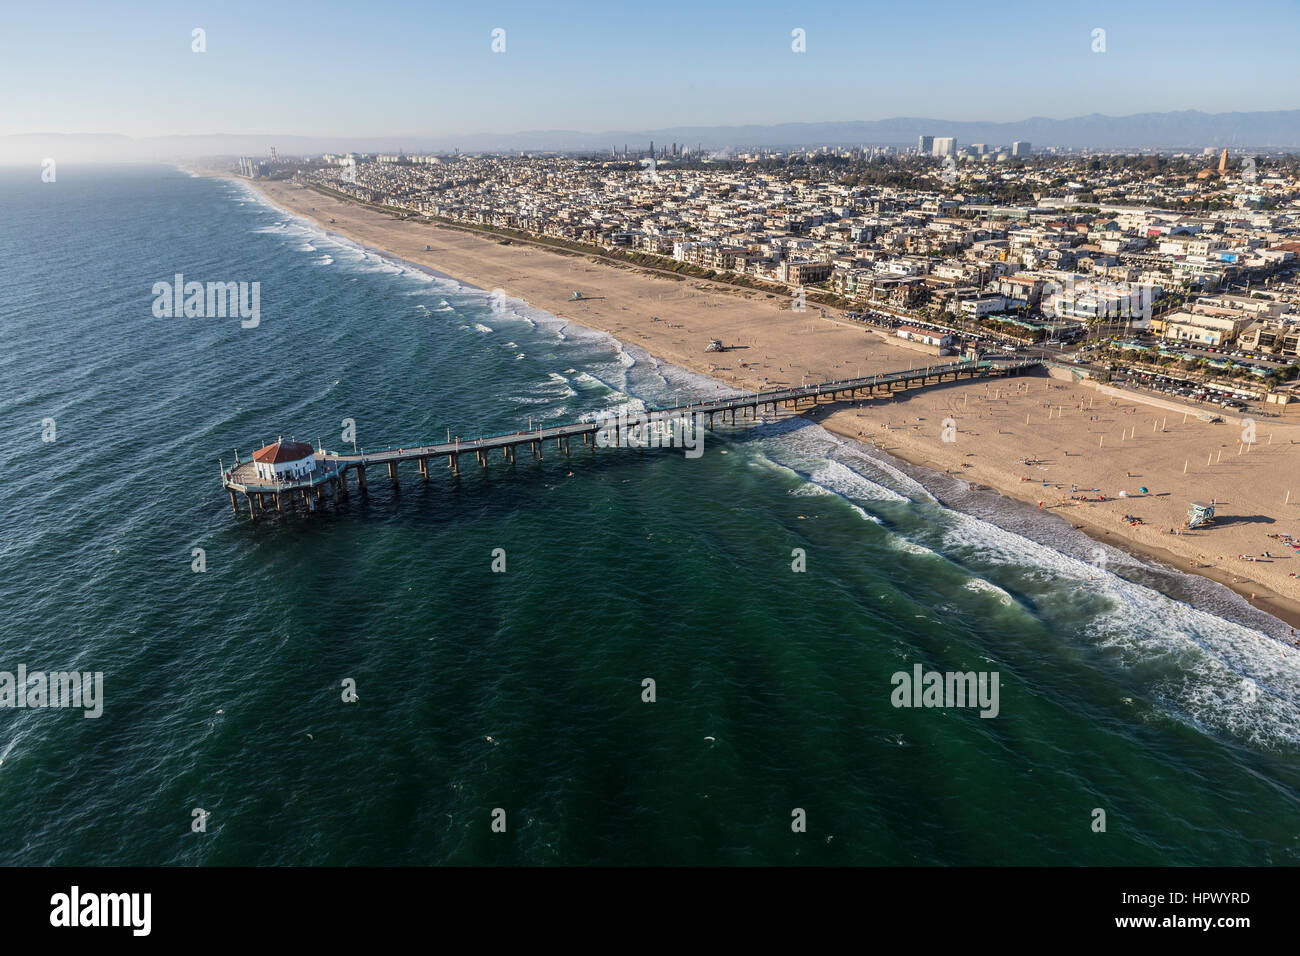 Manhattan Beach, California, USA - August 16, 2016:  Aerial view of Manhattan Beach Pier near Los Angeles in Southern - Stock Image